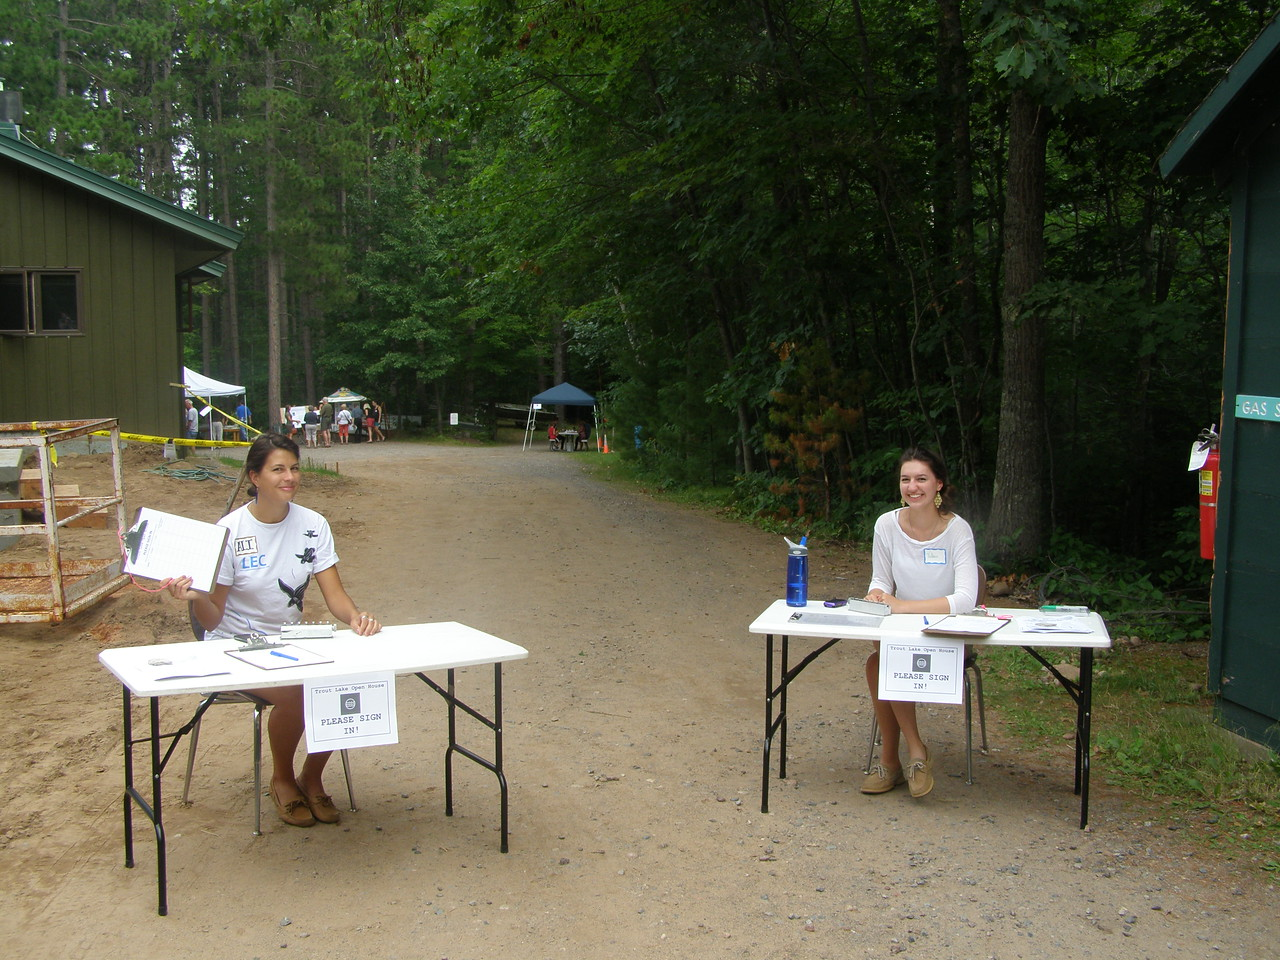 On Friday, August 3rd, the CFL's research station on Trout Lake in northern Wisconsin held it's 2nd annual open house. Here, summer undergraduate students Ali Branscombe and Val Jones staff the sign-in tables.